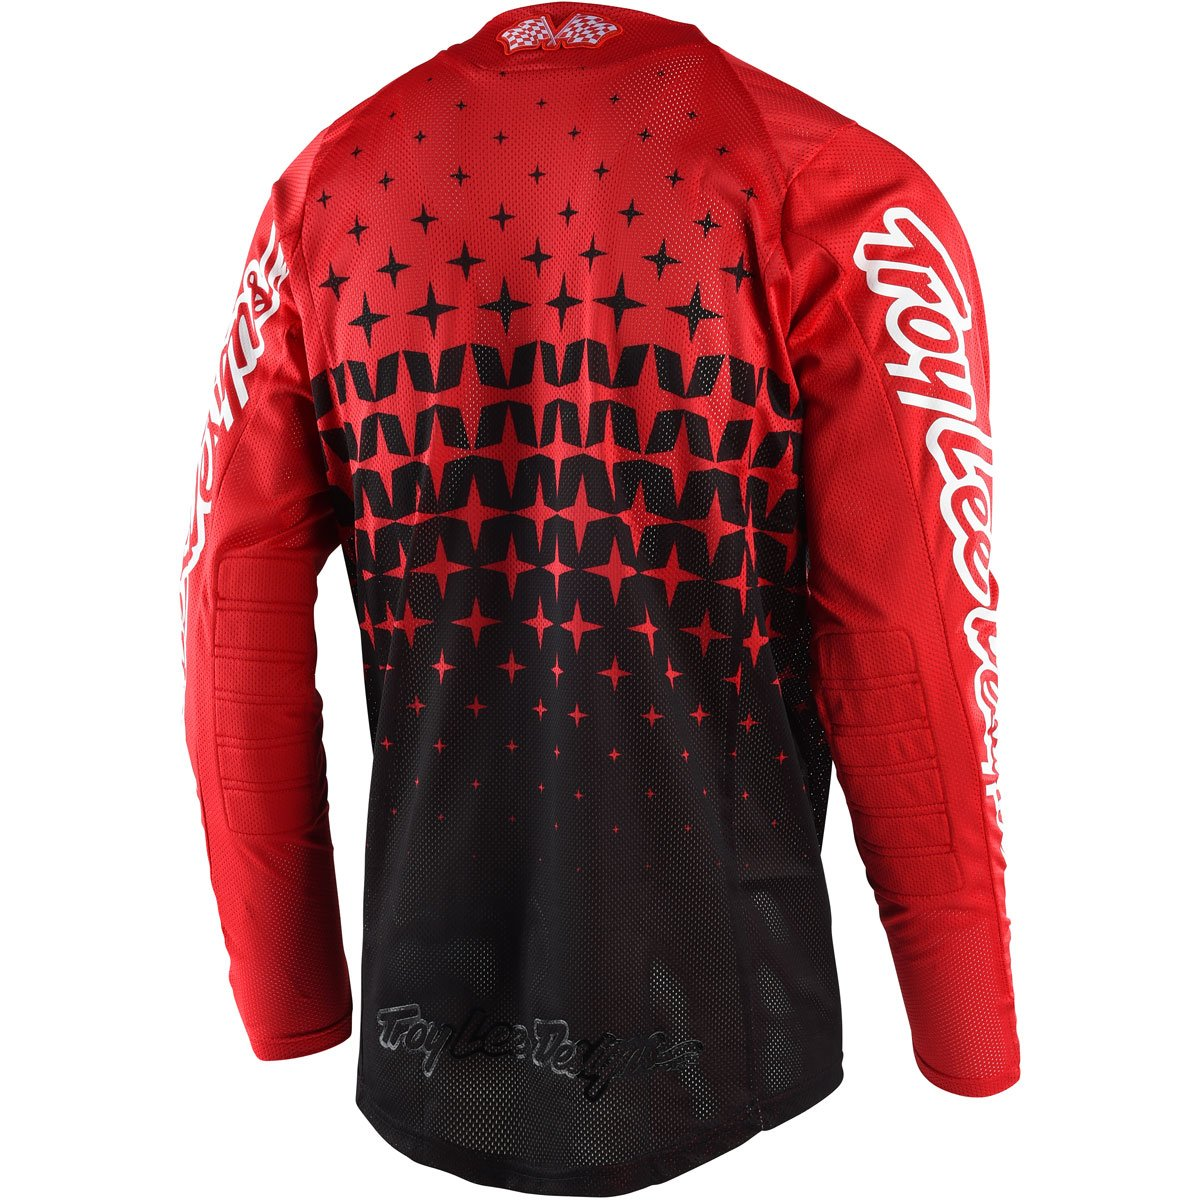 Troy Lee Designs SE Air Megaburst Men's Off-Road Motorcycle Jersey - Red/Black / Large by Troy Lee Designs (Image #2)